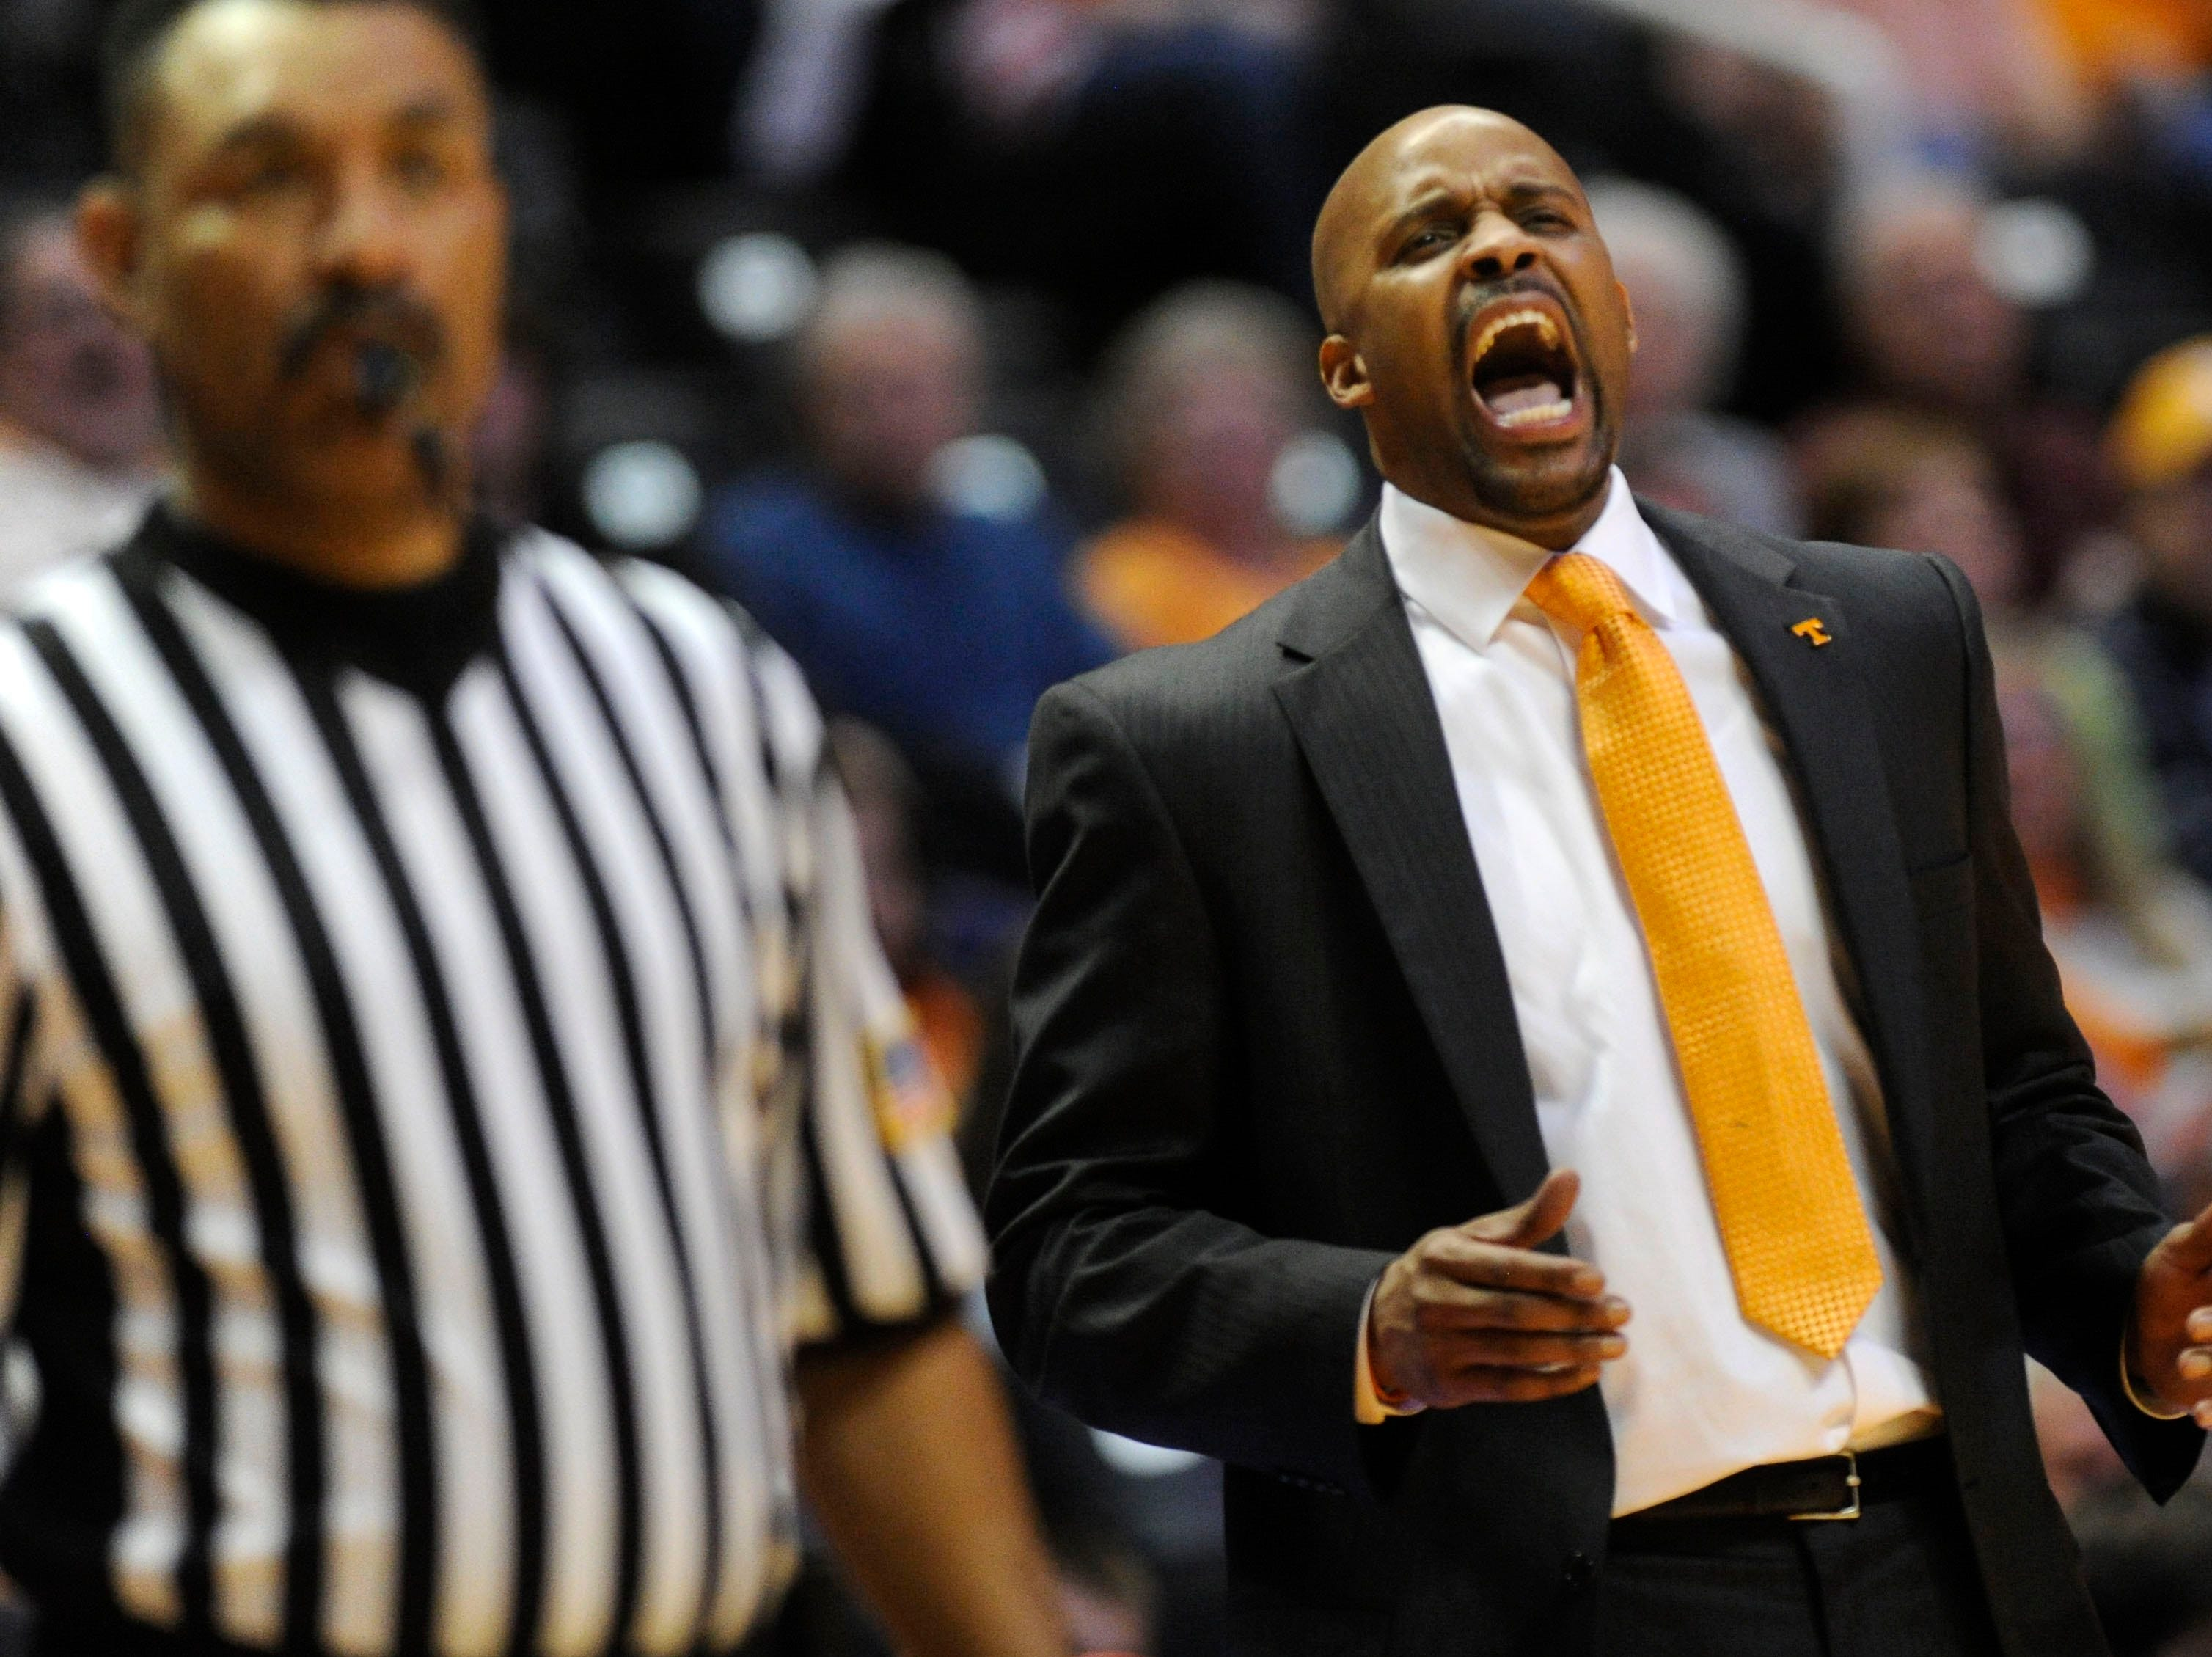 Tennessee head coach Cuonzo Martin reacts as the Vols defeat Ole Miss 86-70 during the second half at the Thompson-Boling Arena in Knoxville on Wednesday, Jan. 29, 2014.